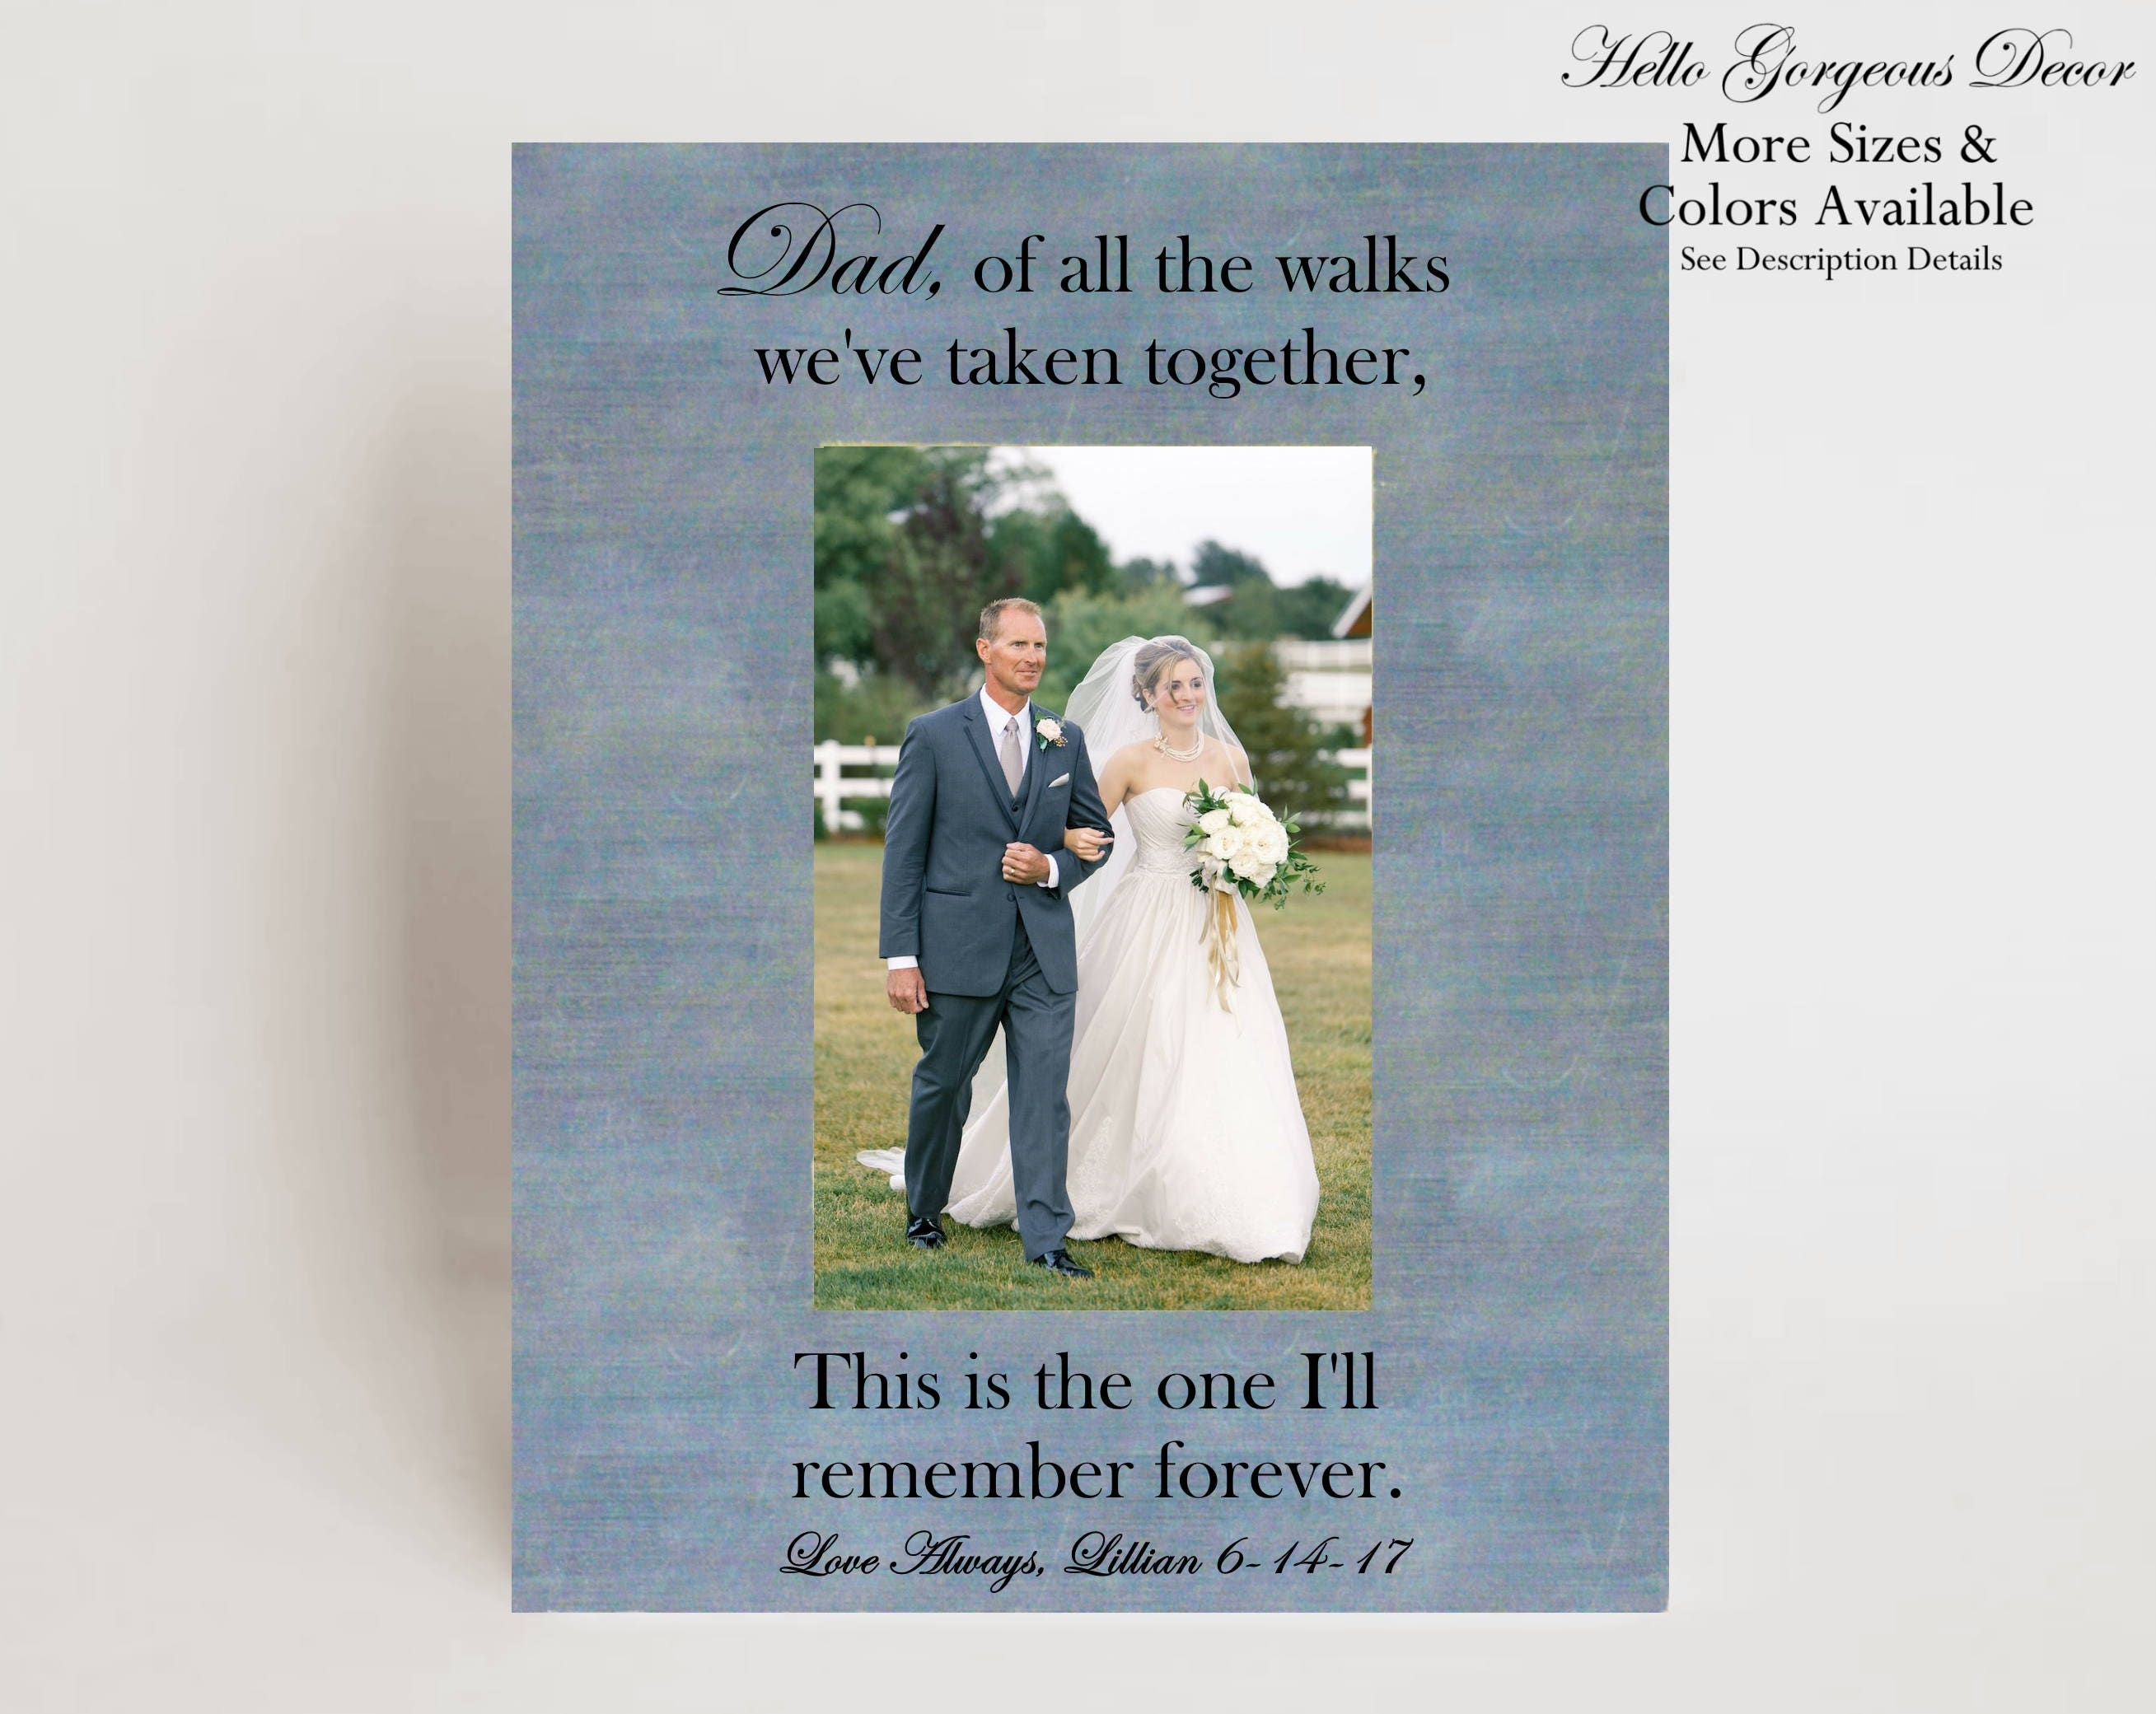 Father Gift To Daughter On Wedding Day: Father Of Bride Gift Picture Frame Personalized Gift To